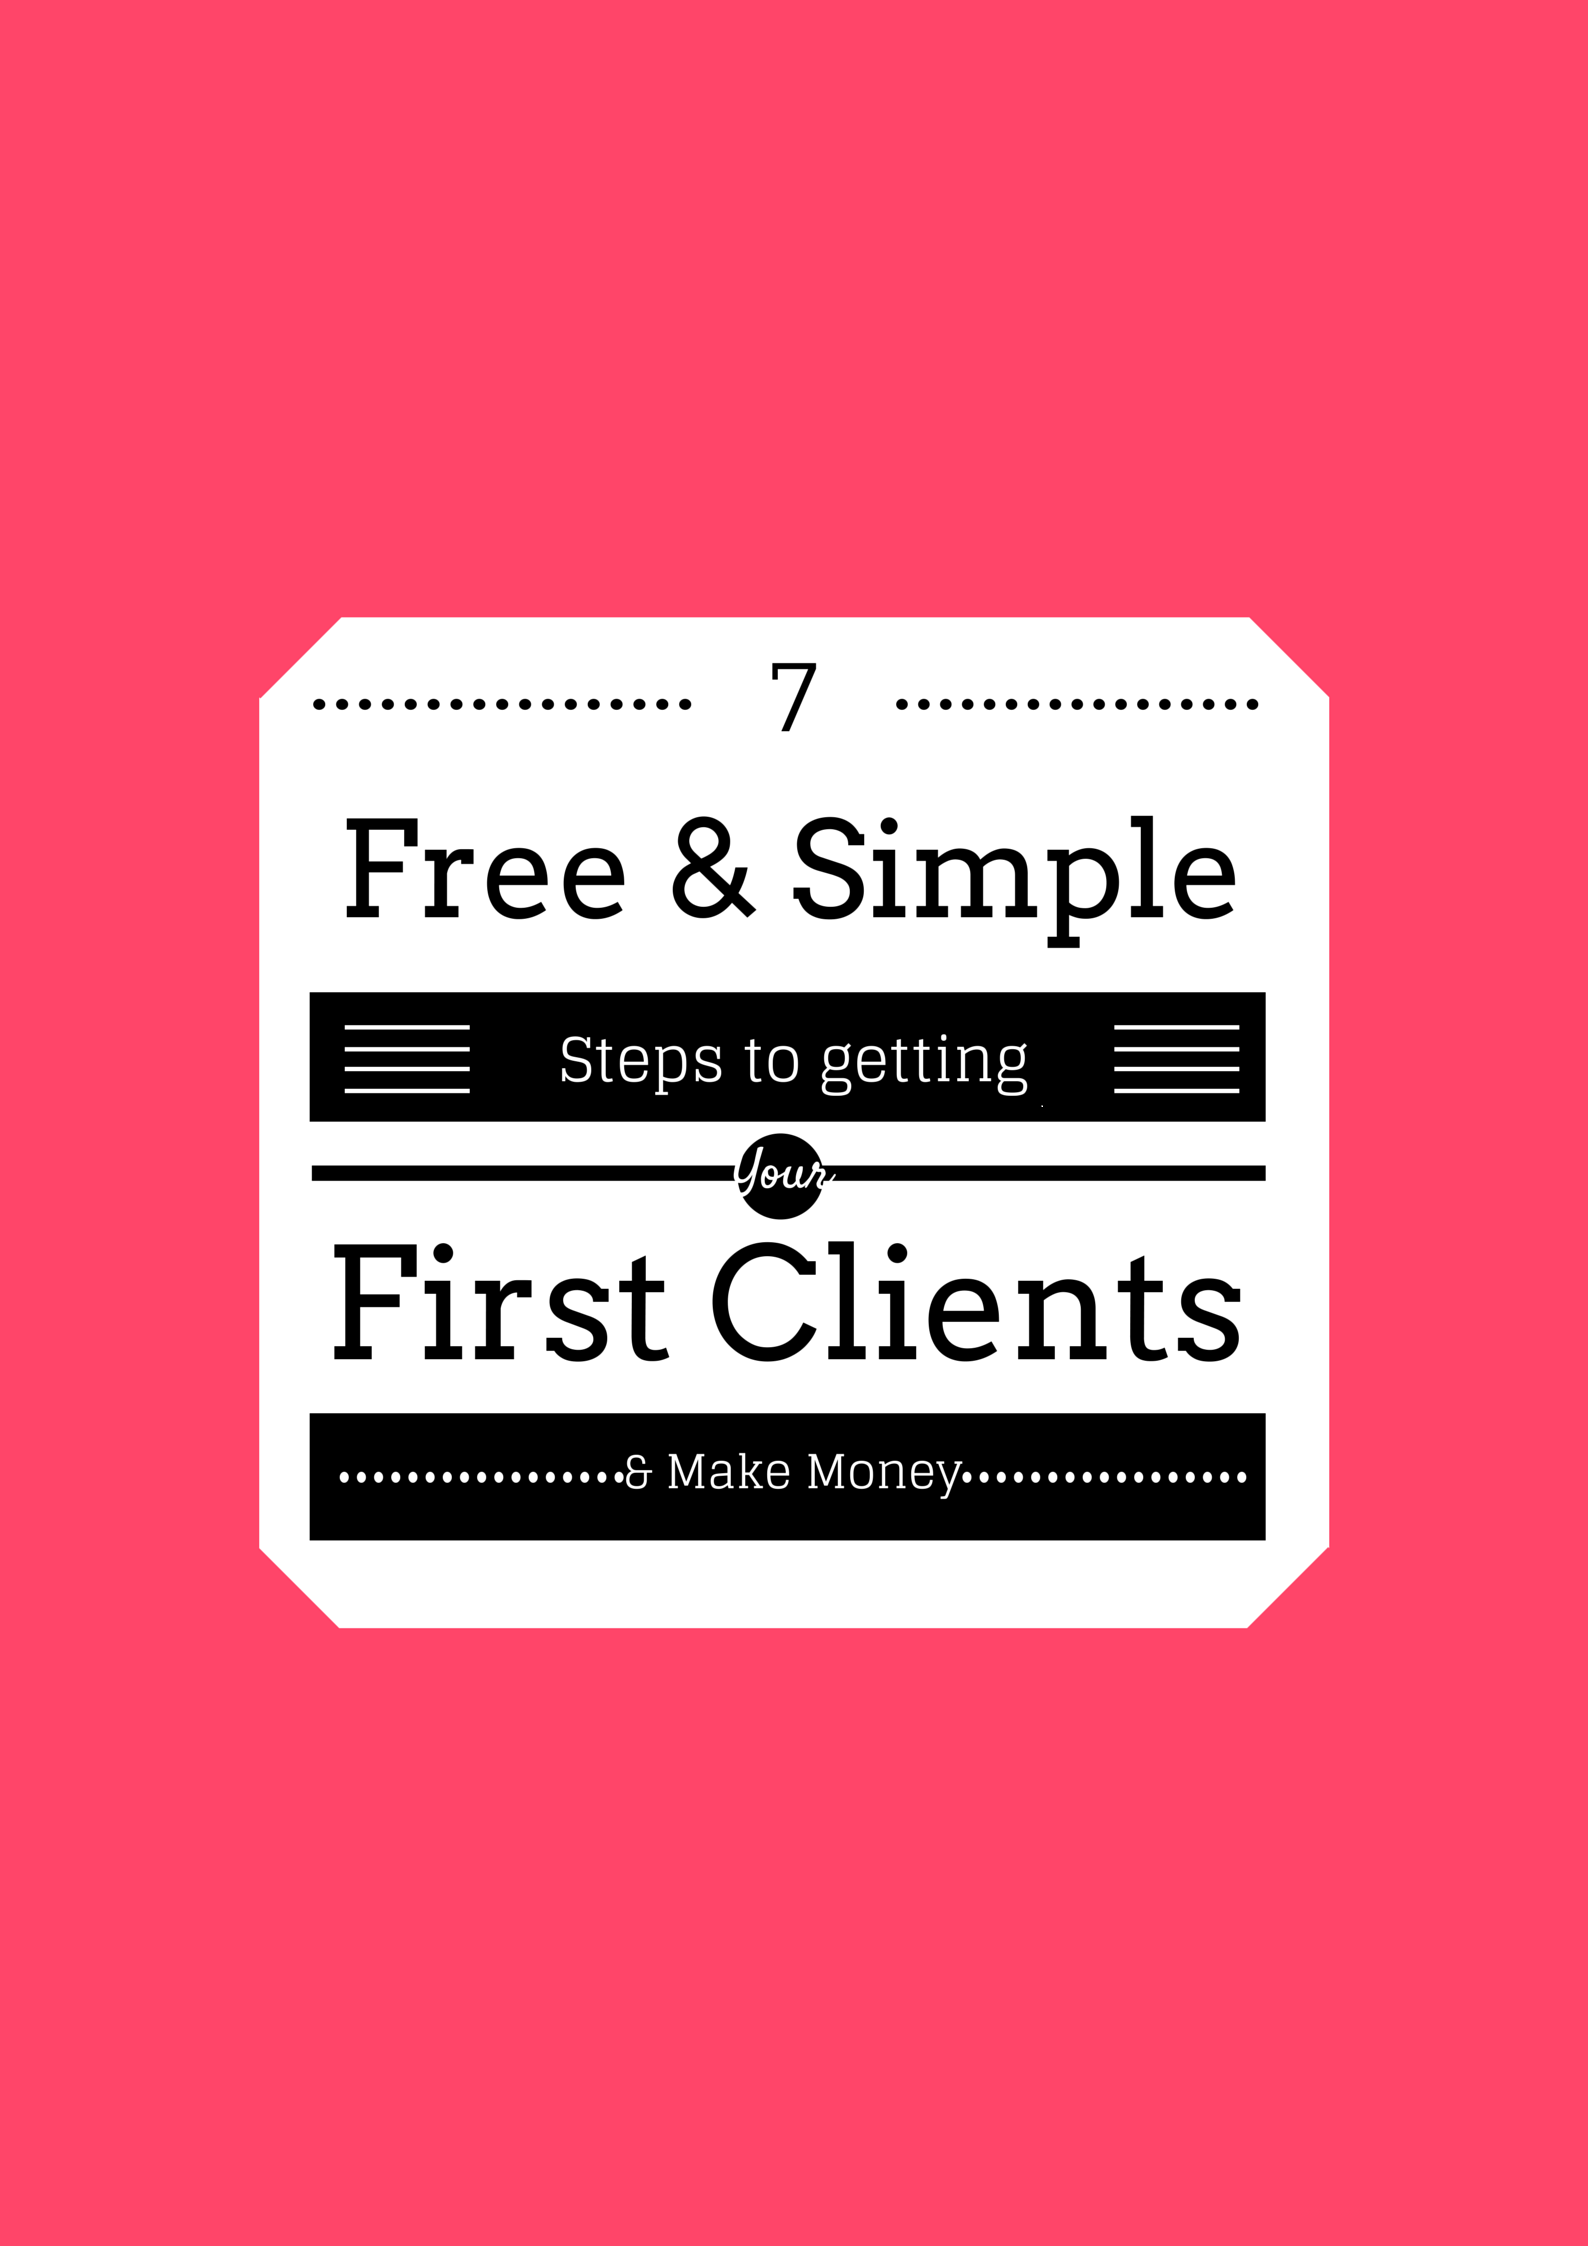 7 FREE and SIMPLE Steps to Getting Your First Client and Making Money pic